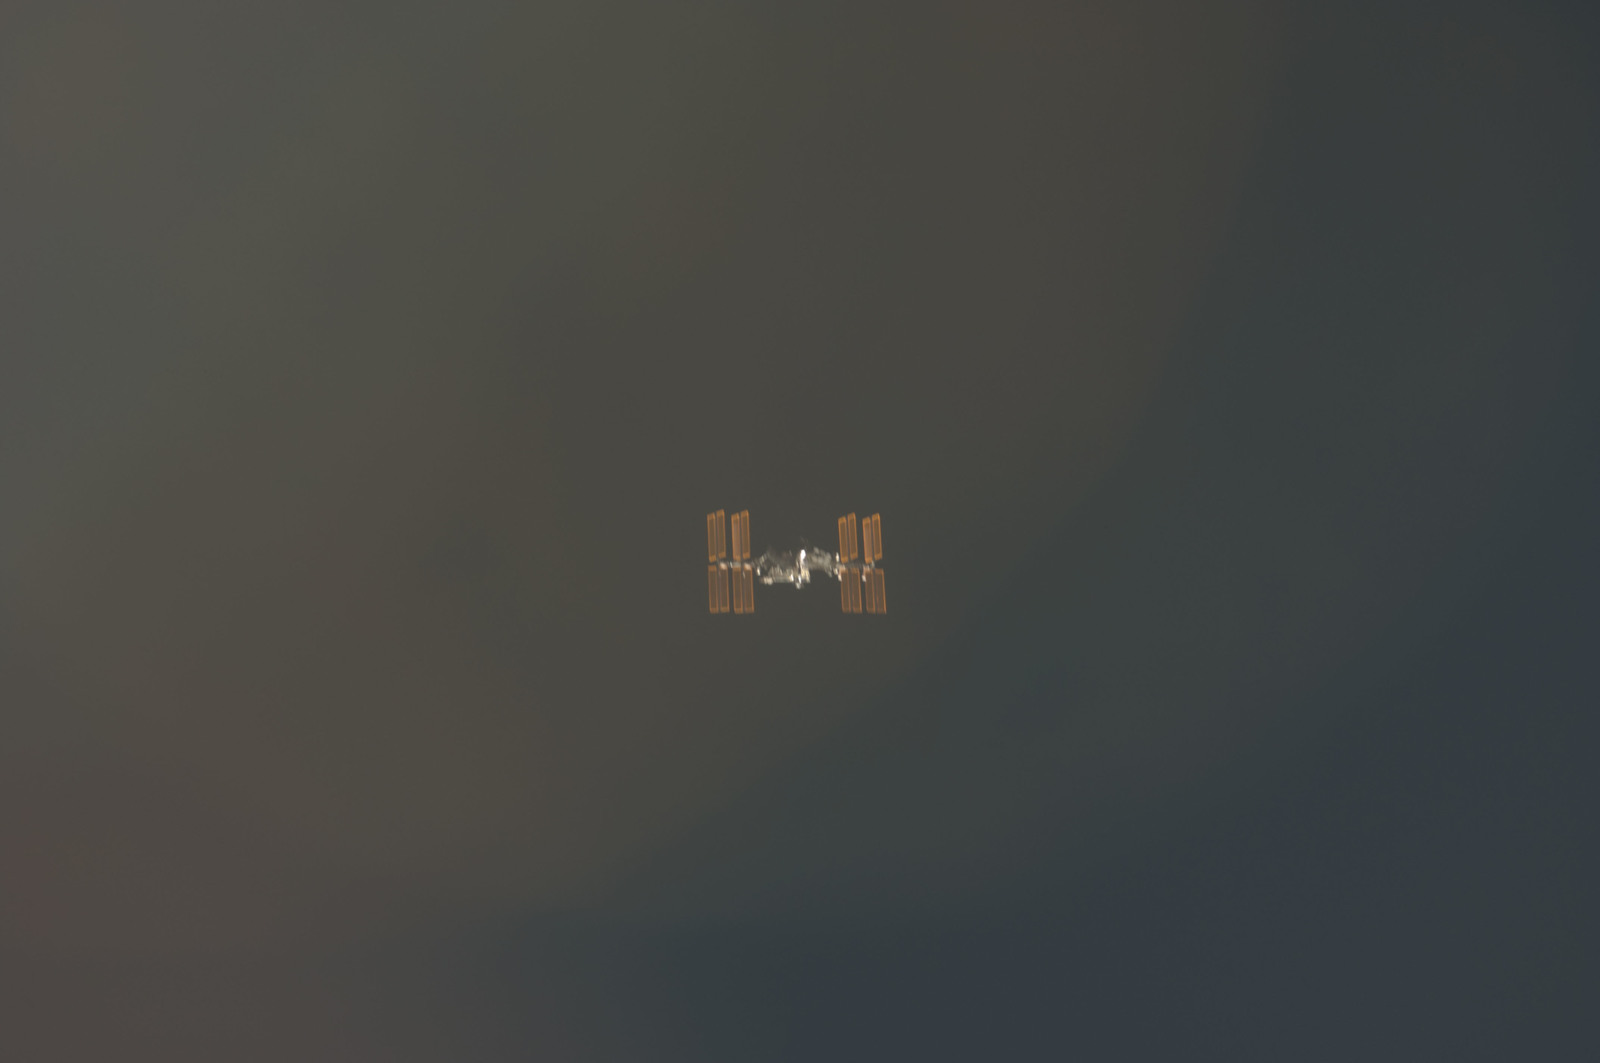 S134E006572 - STS-134 - Overall view of ISS taken during STS-134 Approach